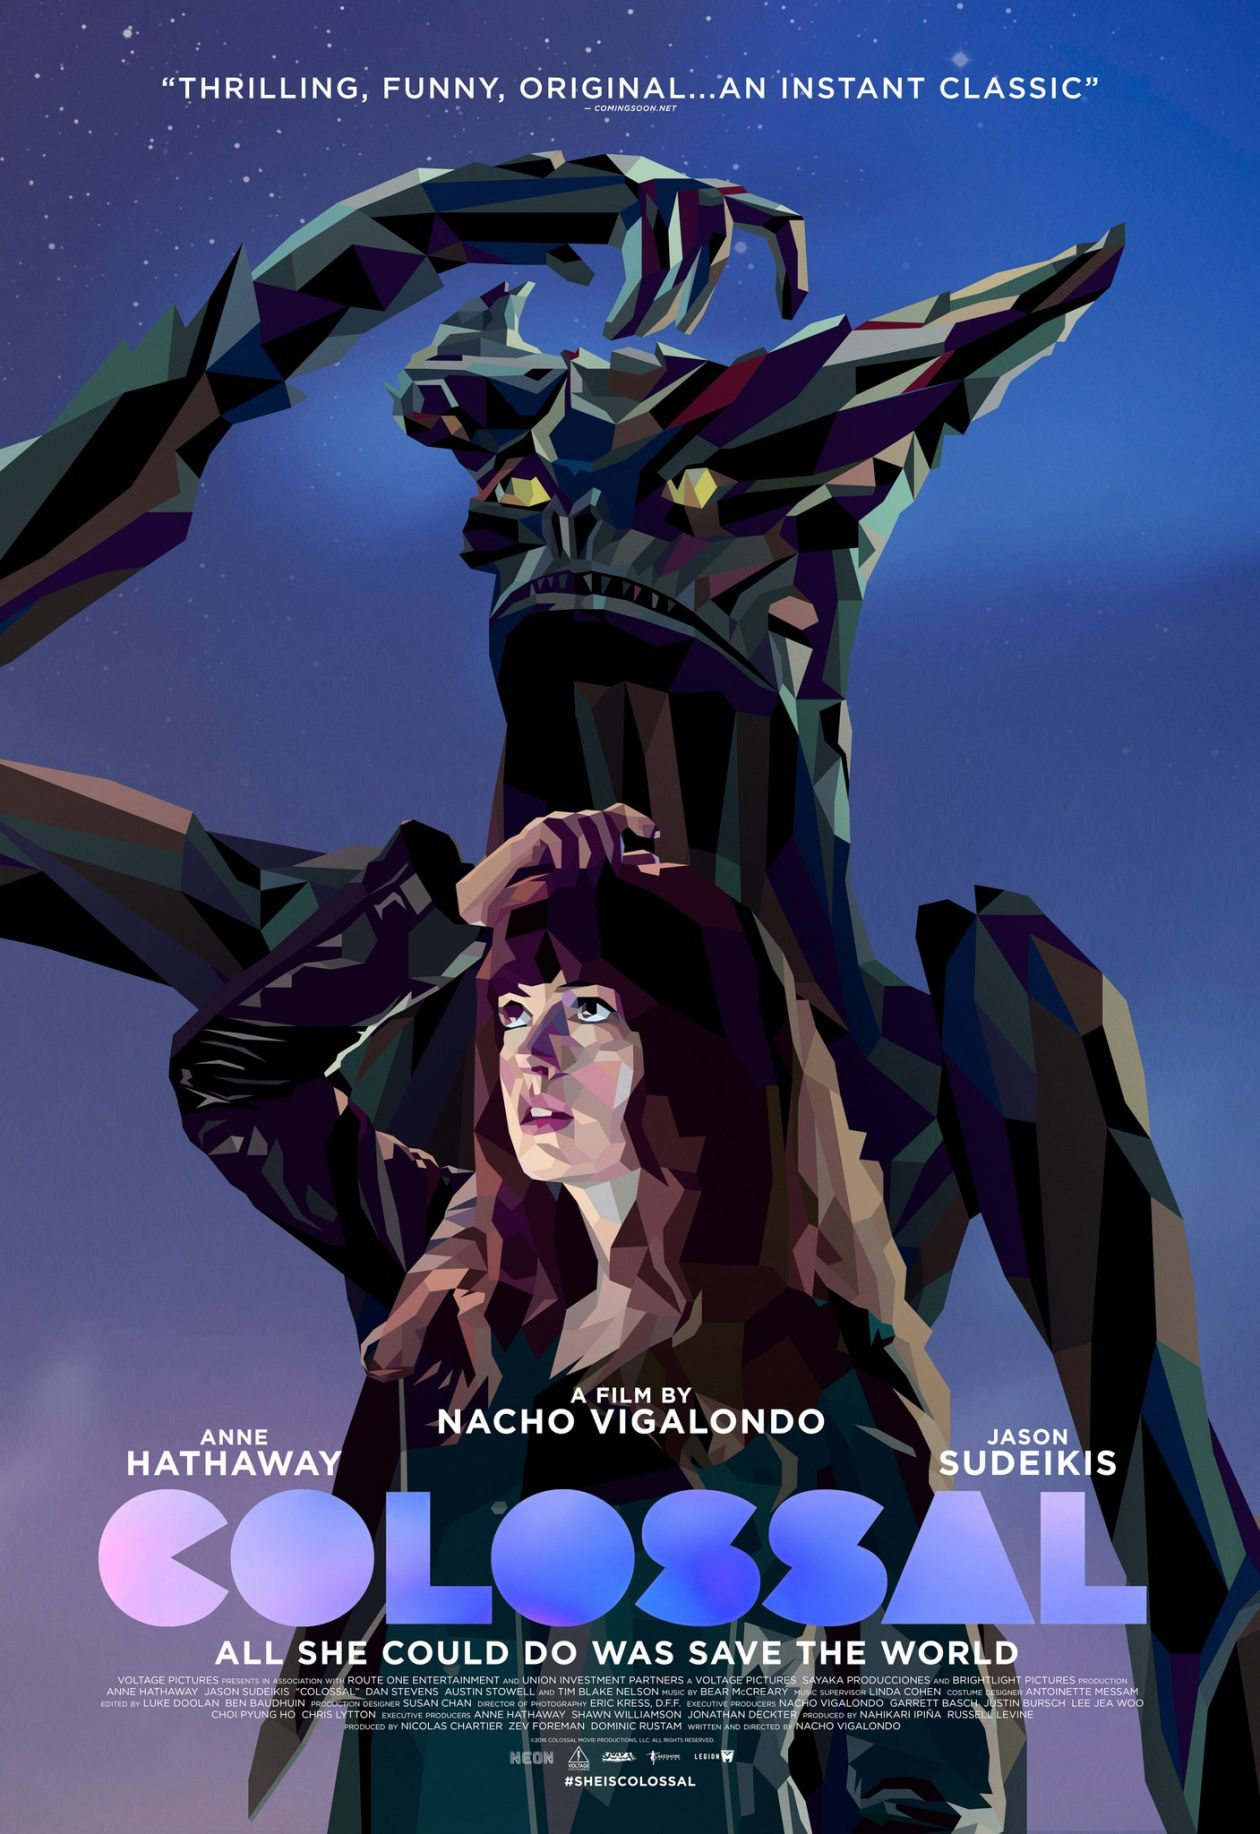 Anne Hathaway actress | Colossal / Nacho Vigalondo 2016 Movie Poster Affiche film